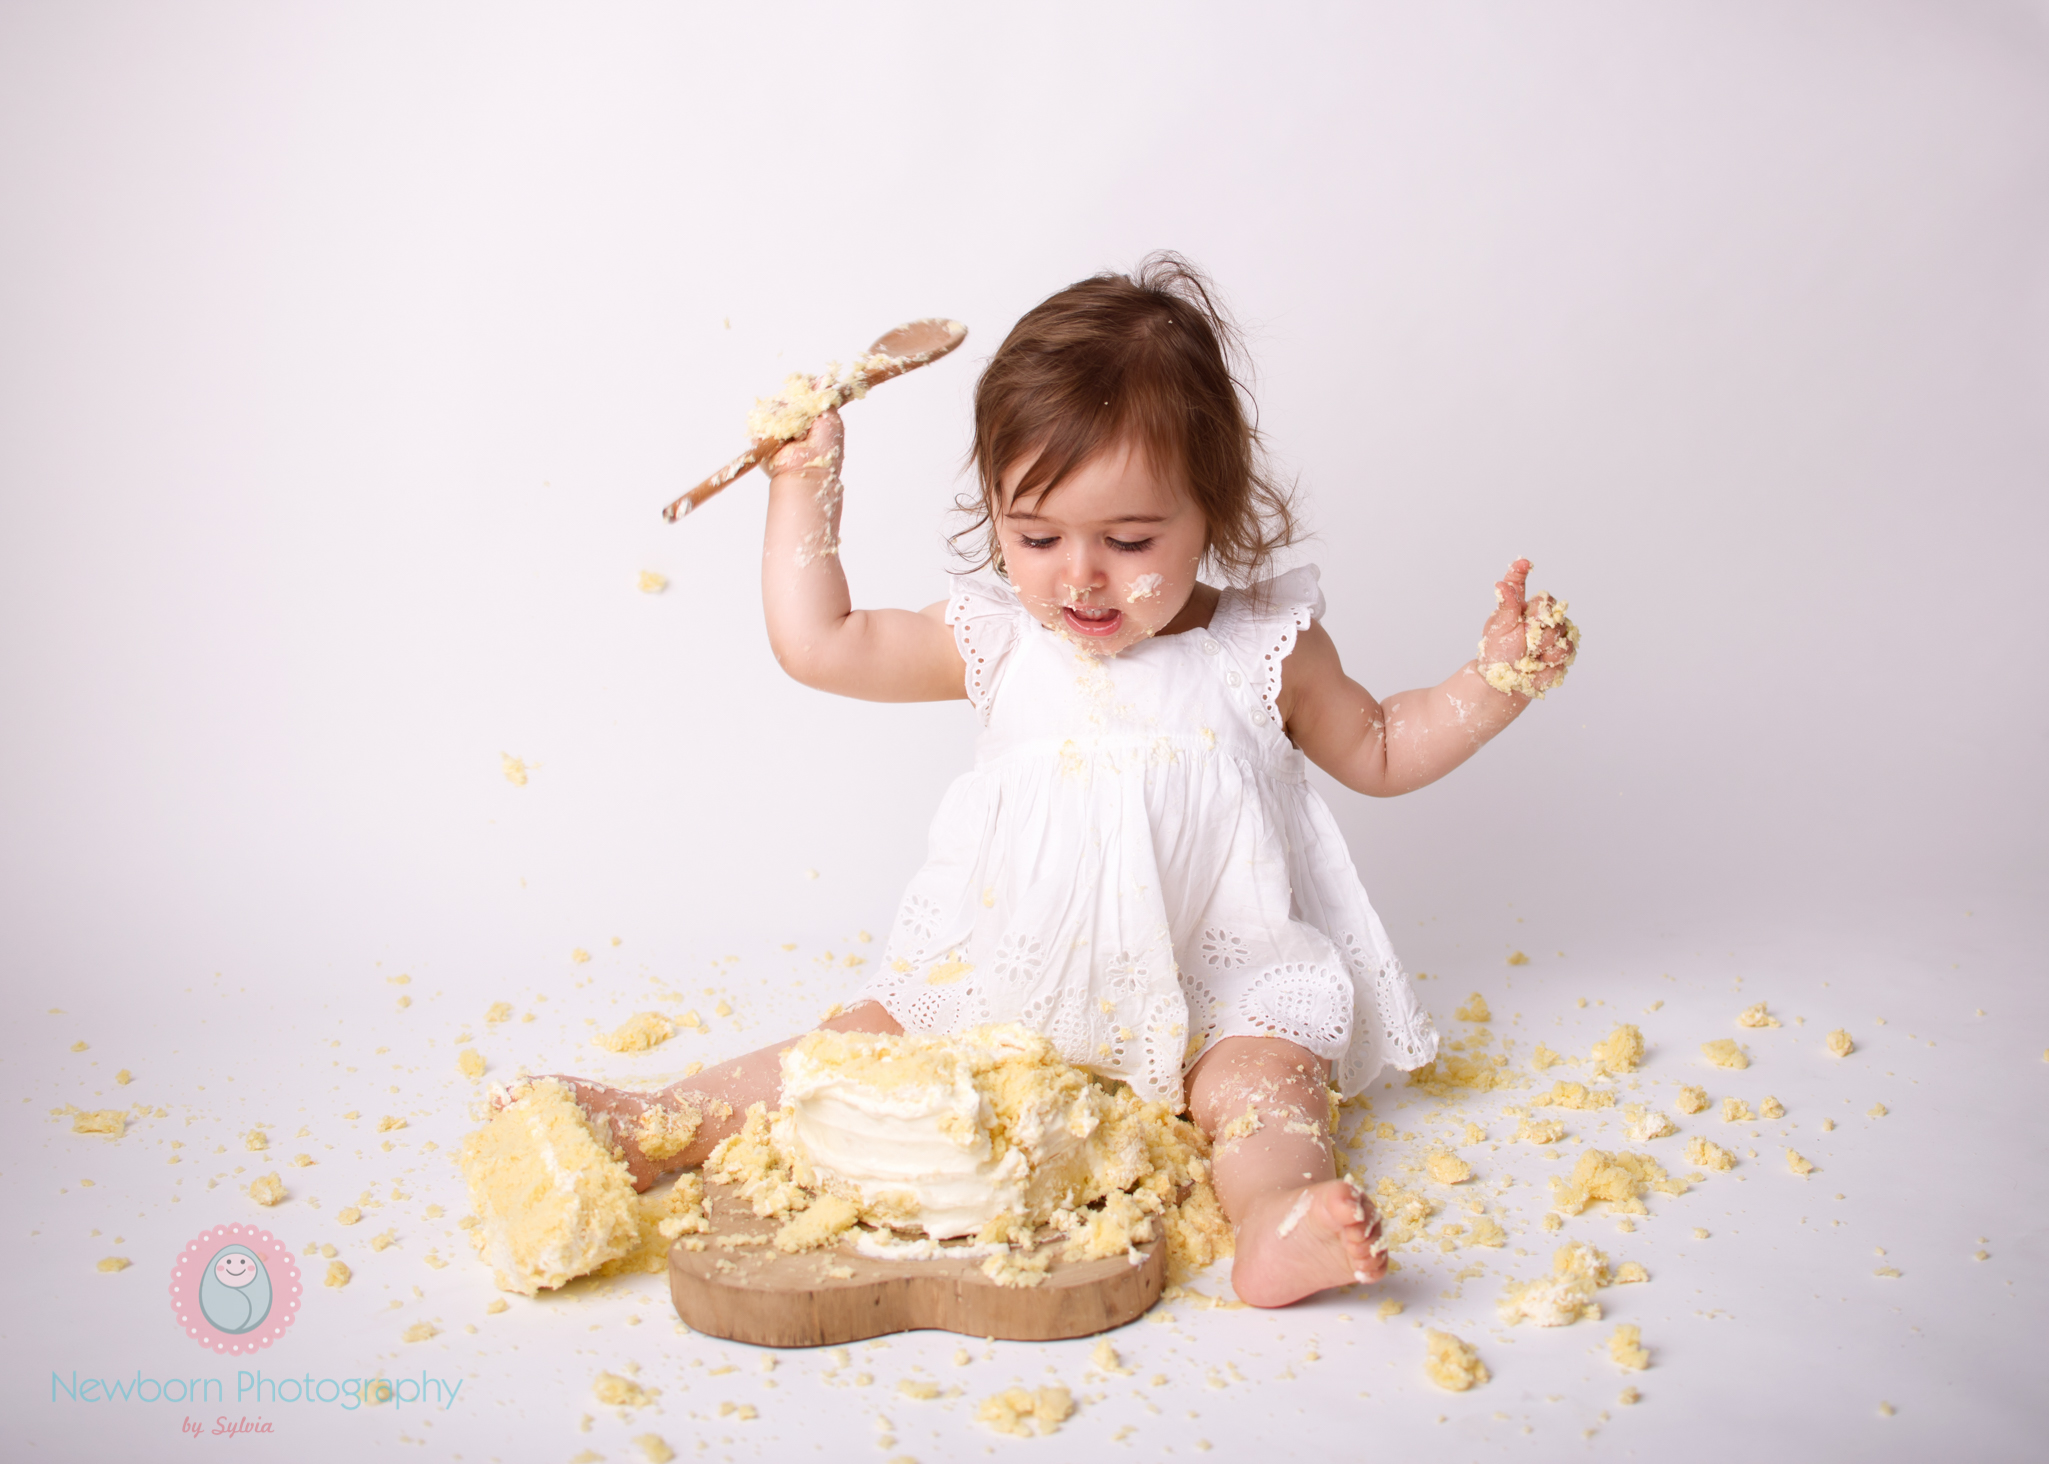 Bristol cake smash photography